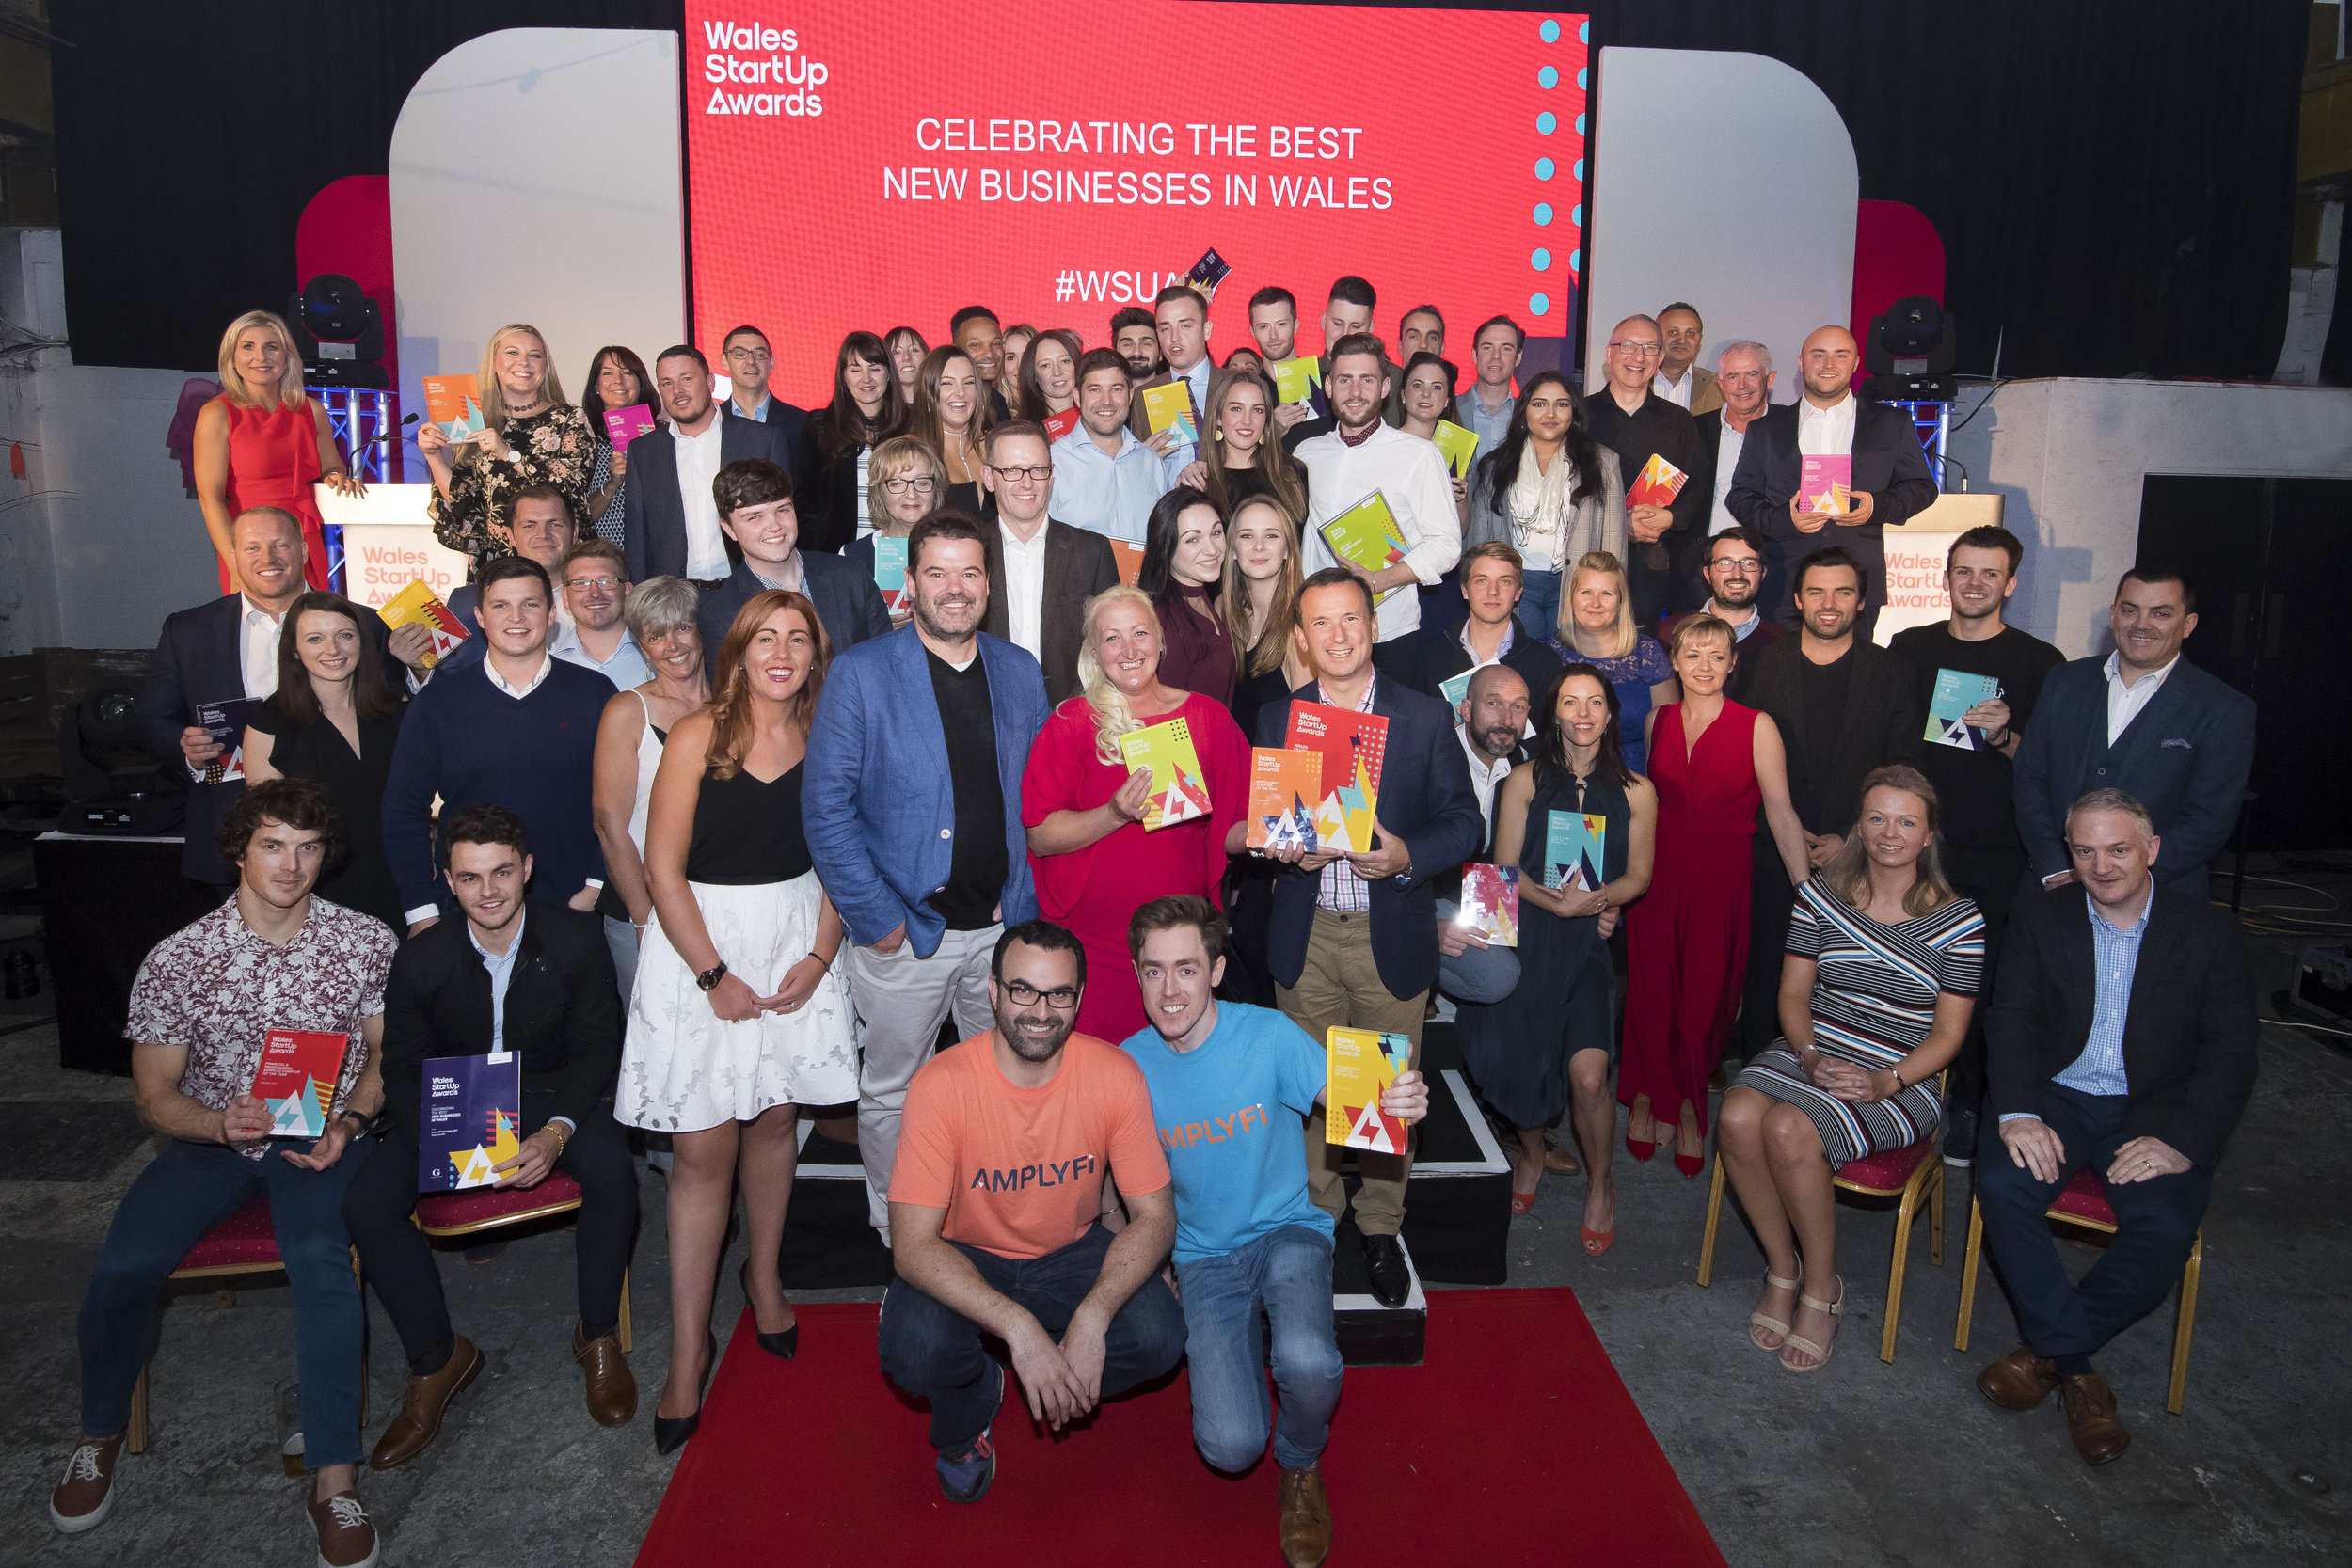 All the winners of the Wales Start-up Awards 2017